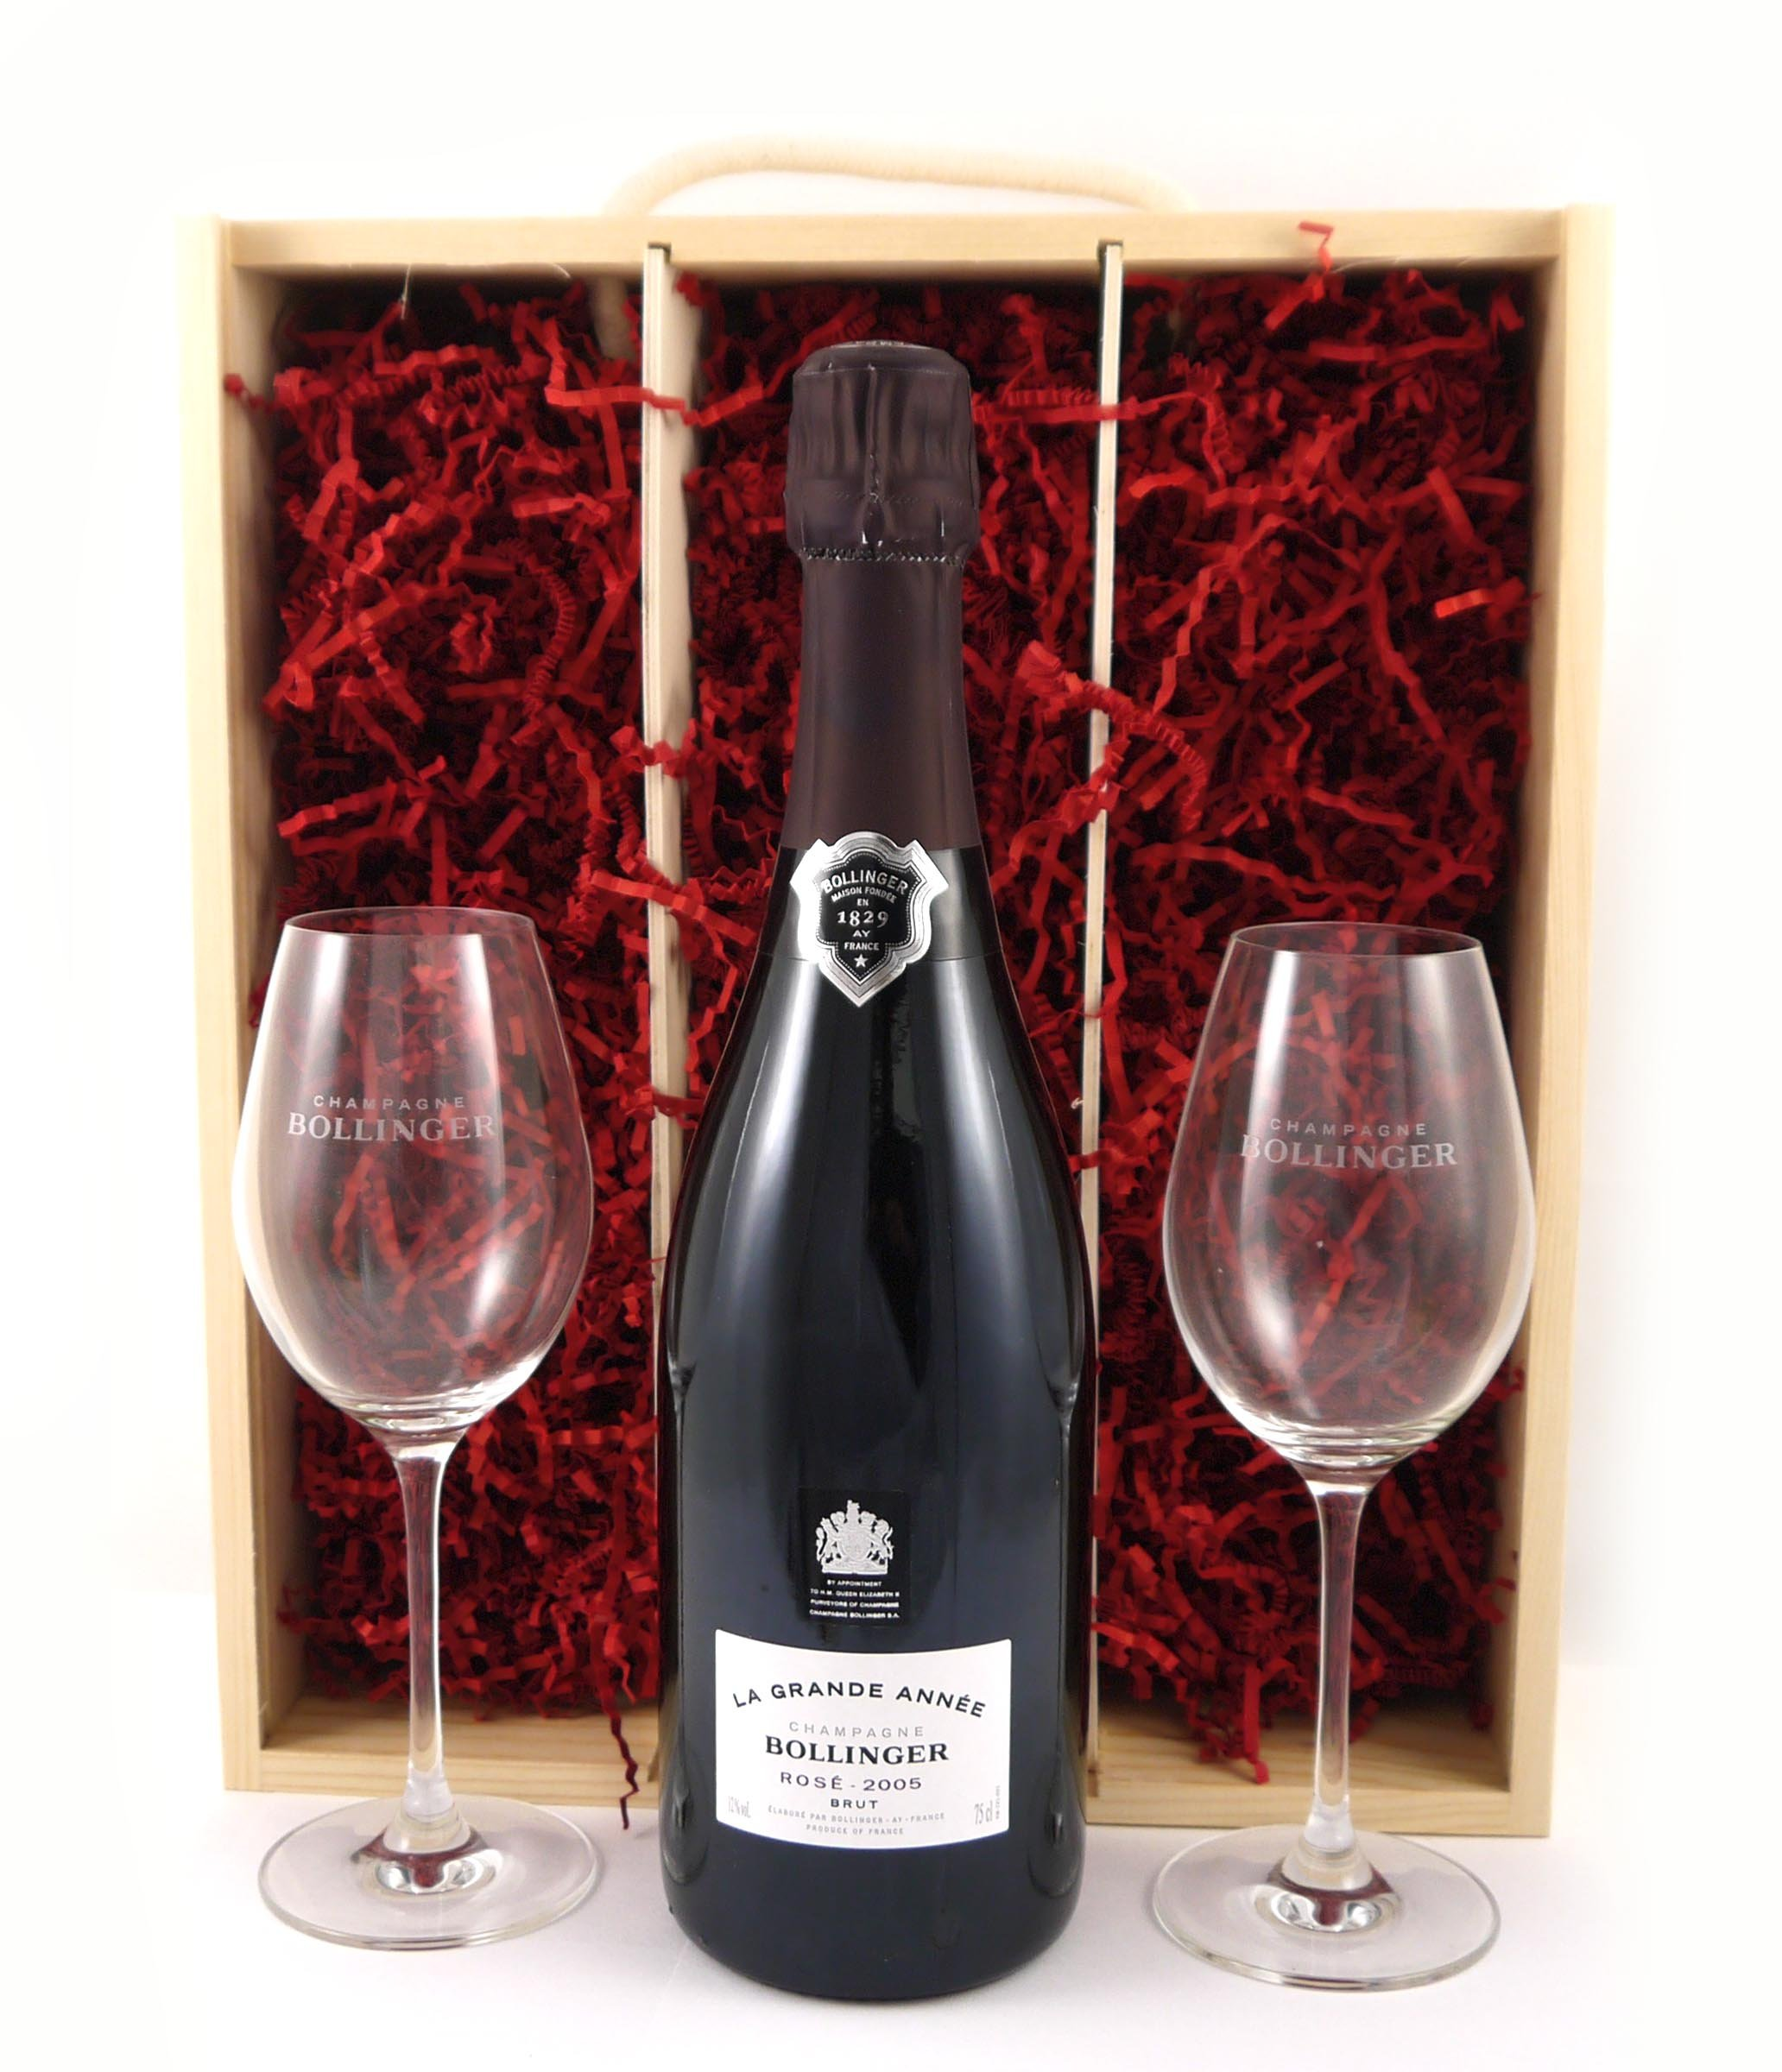 2005 Bollinger Rosé Grand Annee Vintage Champagne with Two Engraved Lehmann Rose Glasses in a wooden gift box